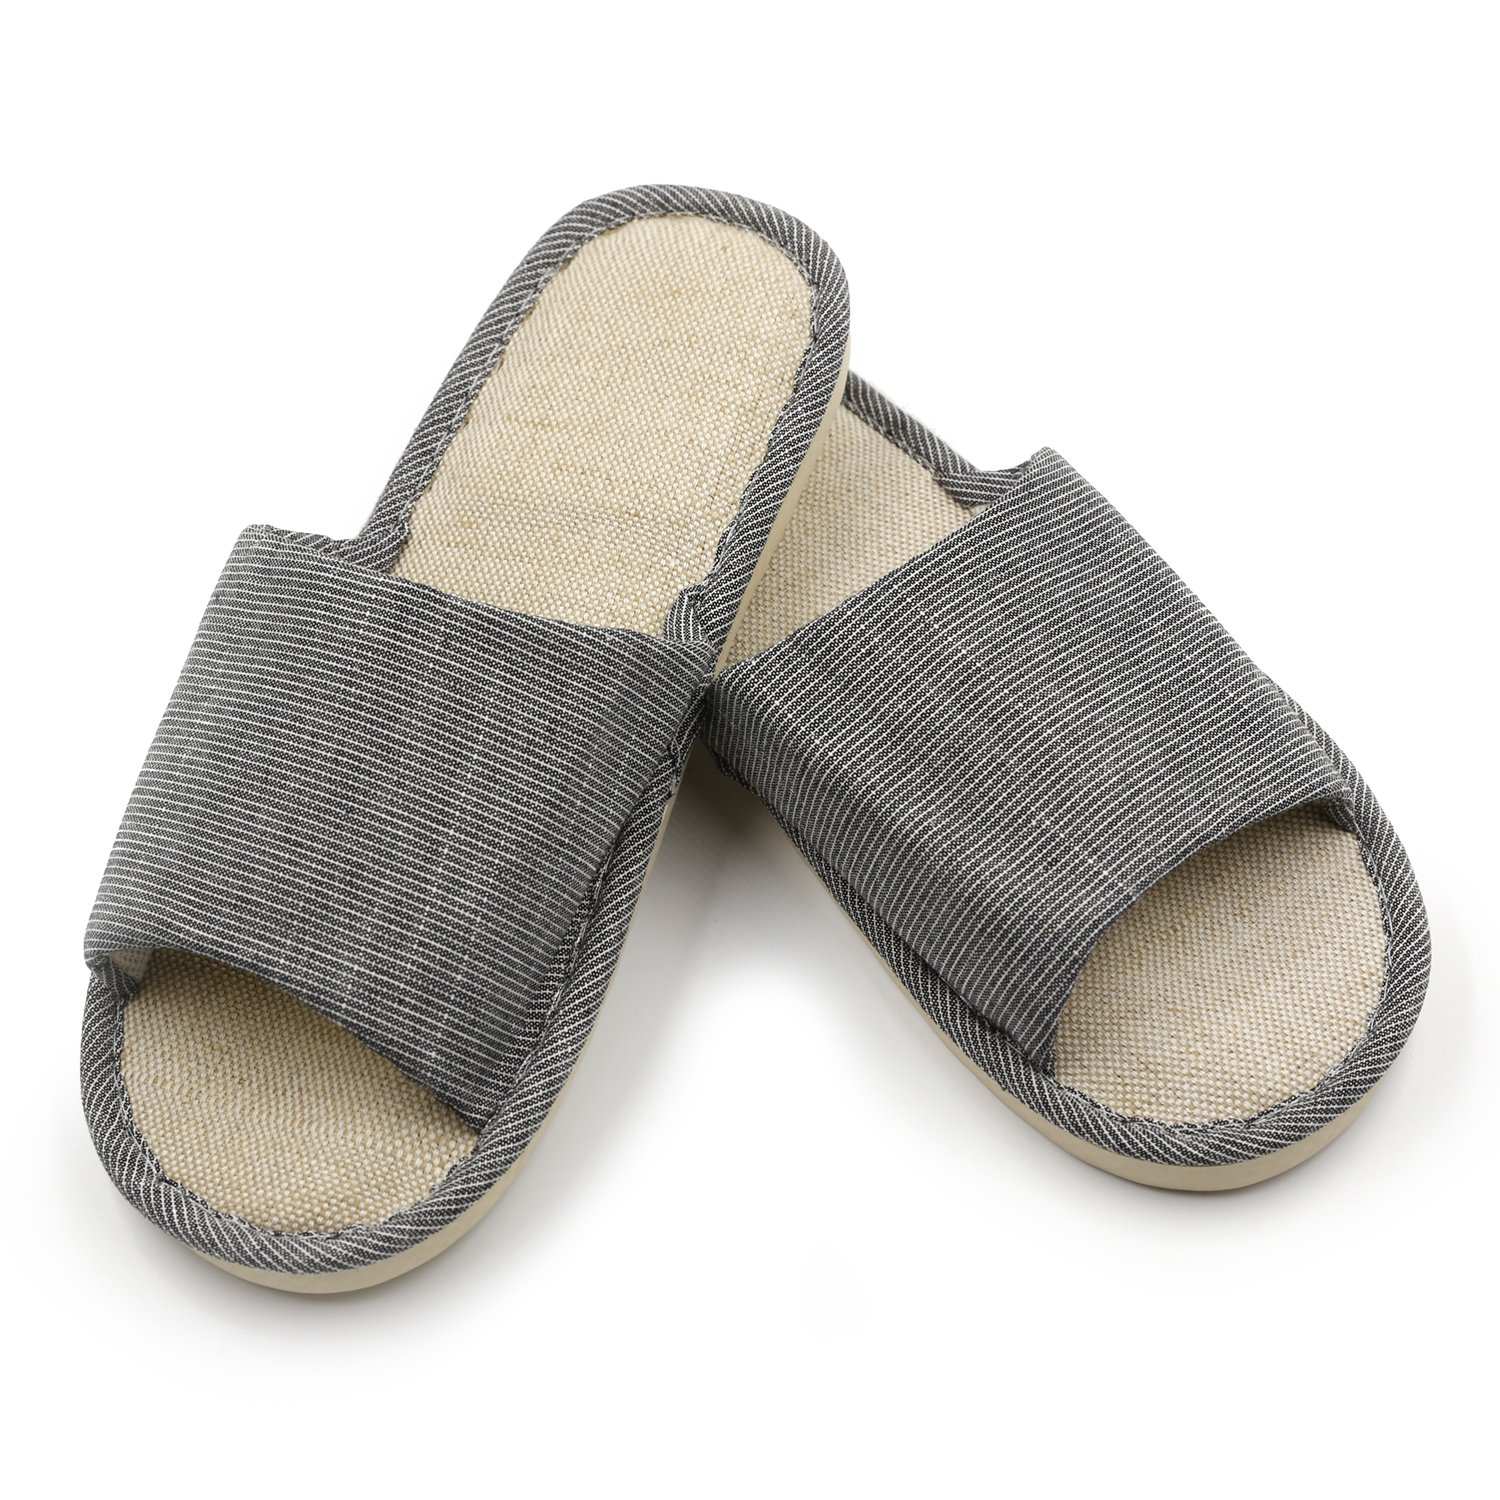 topgalaxy。Z Cotton Flax Casual House Indoor Slippers open-toes thick-soleストライプスライドスリッパ B075D7V3W6  ブラック 270MM(Men US 8.5-9.5)